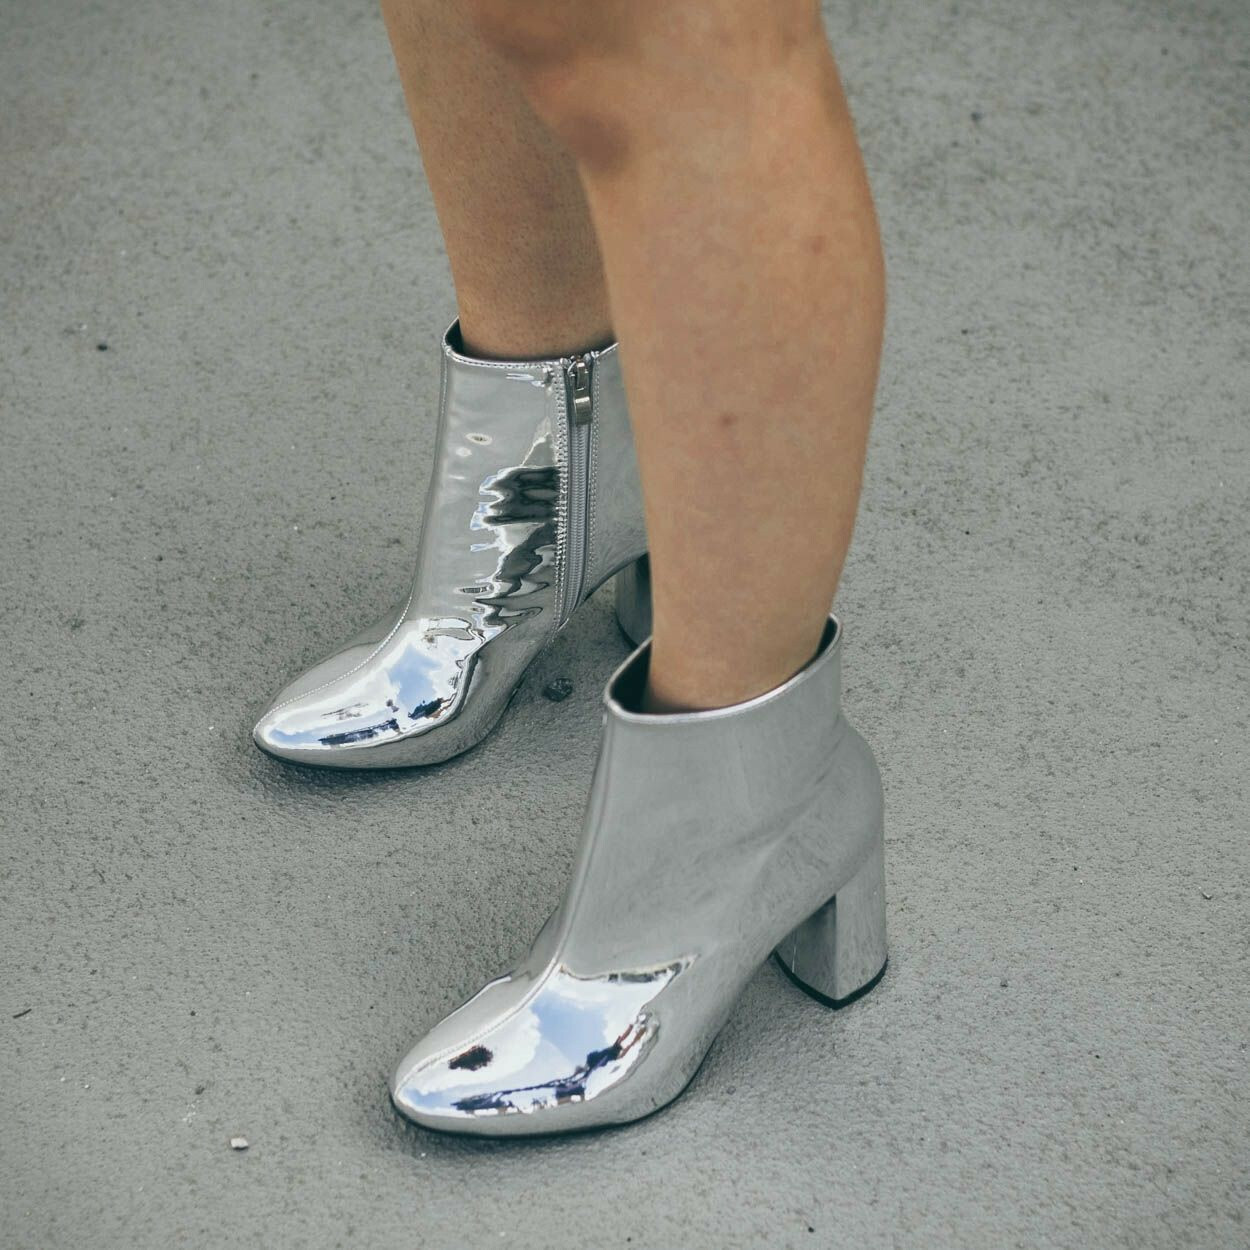 SHINY SILVER BOOTS